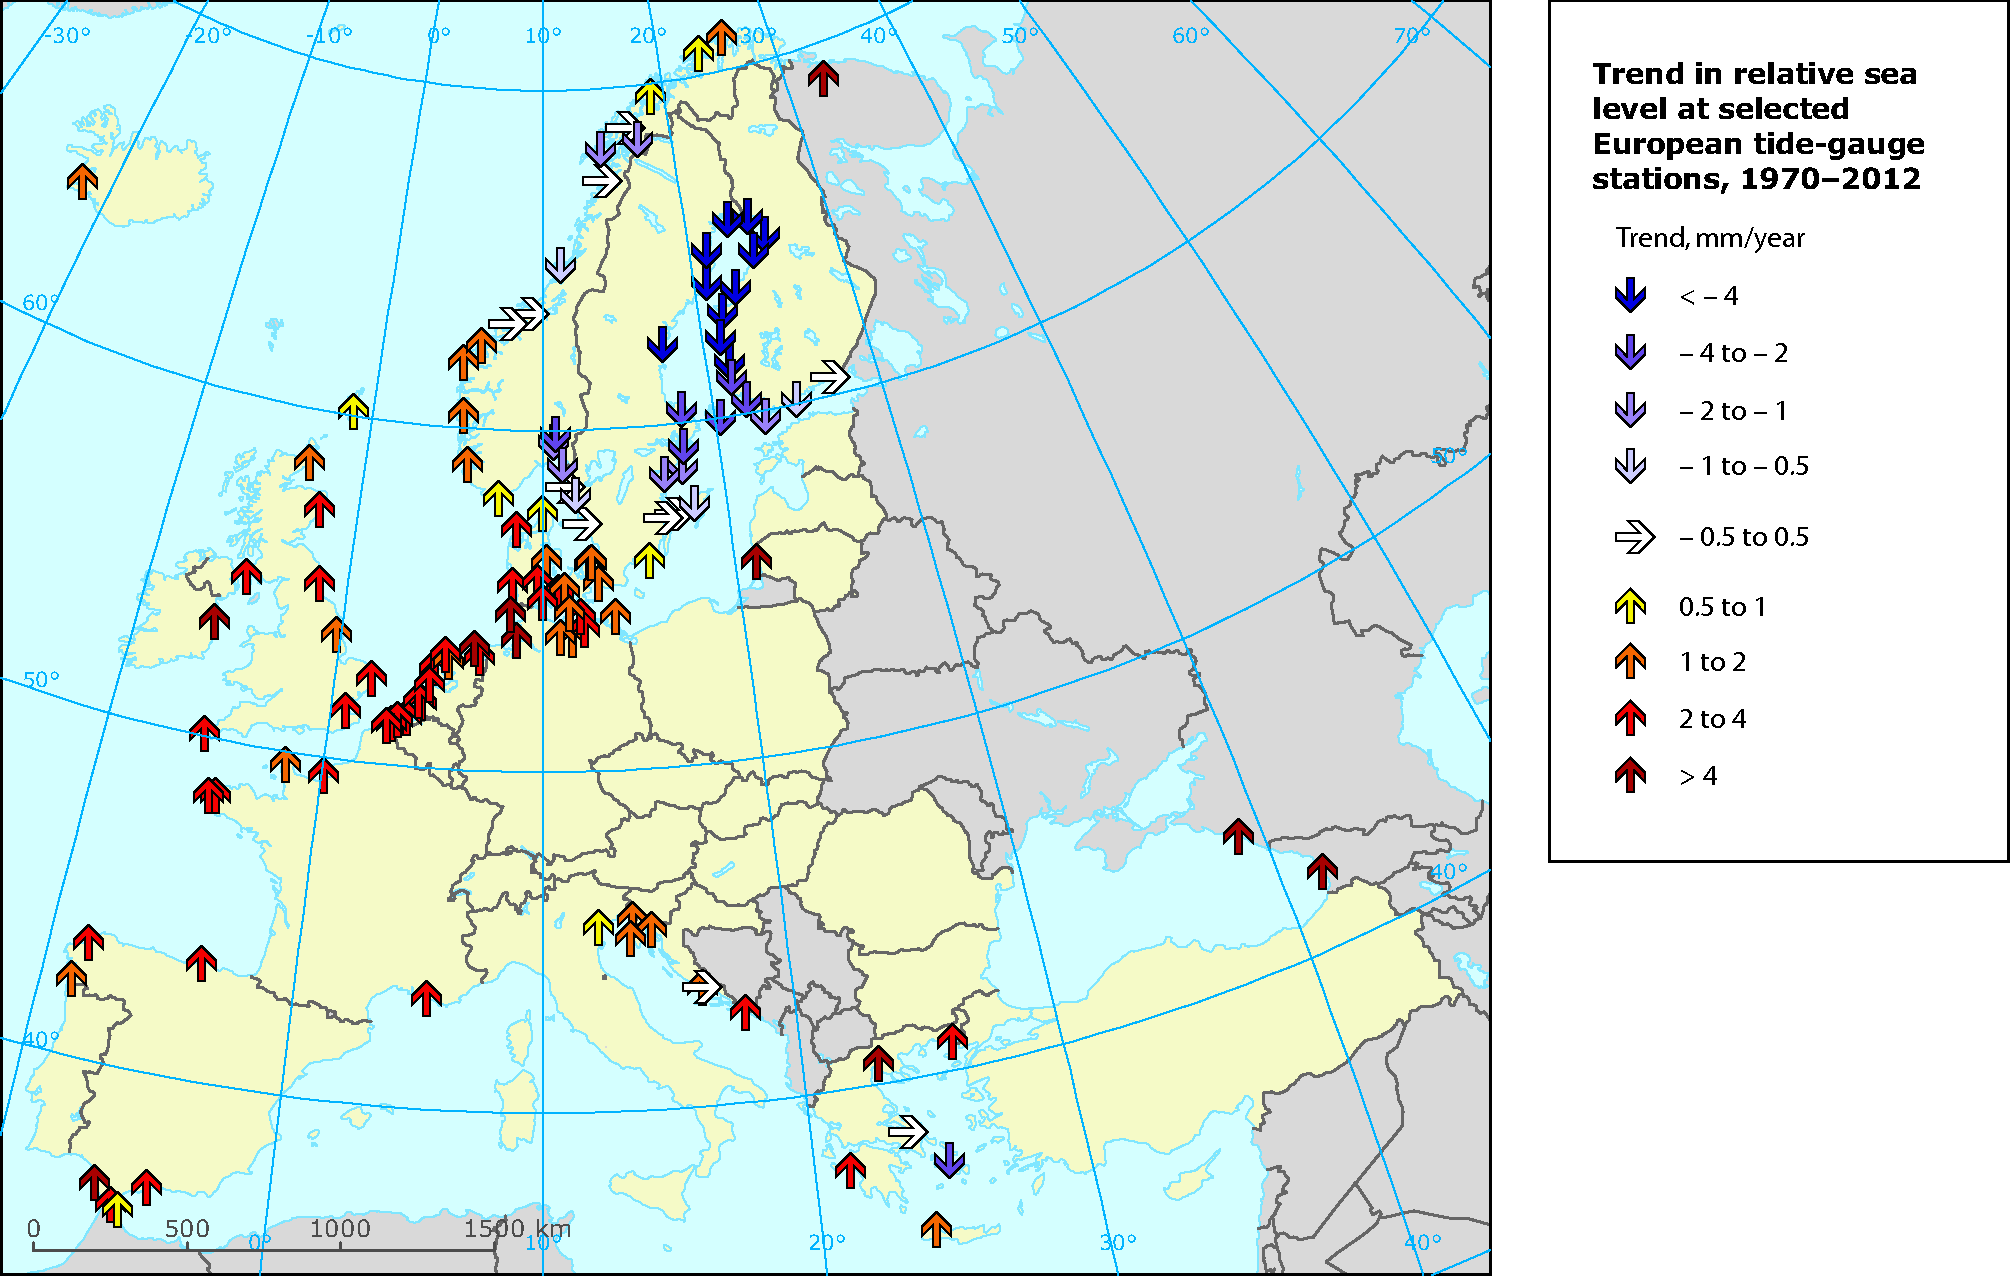 Trend in relative sea level at selected European tide gauge stations